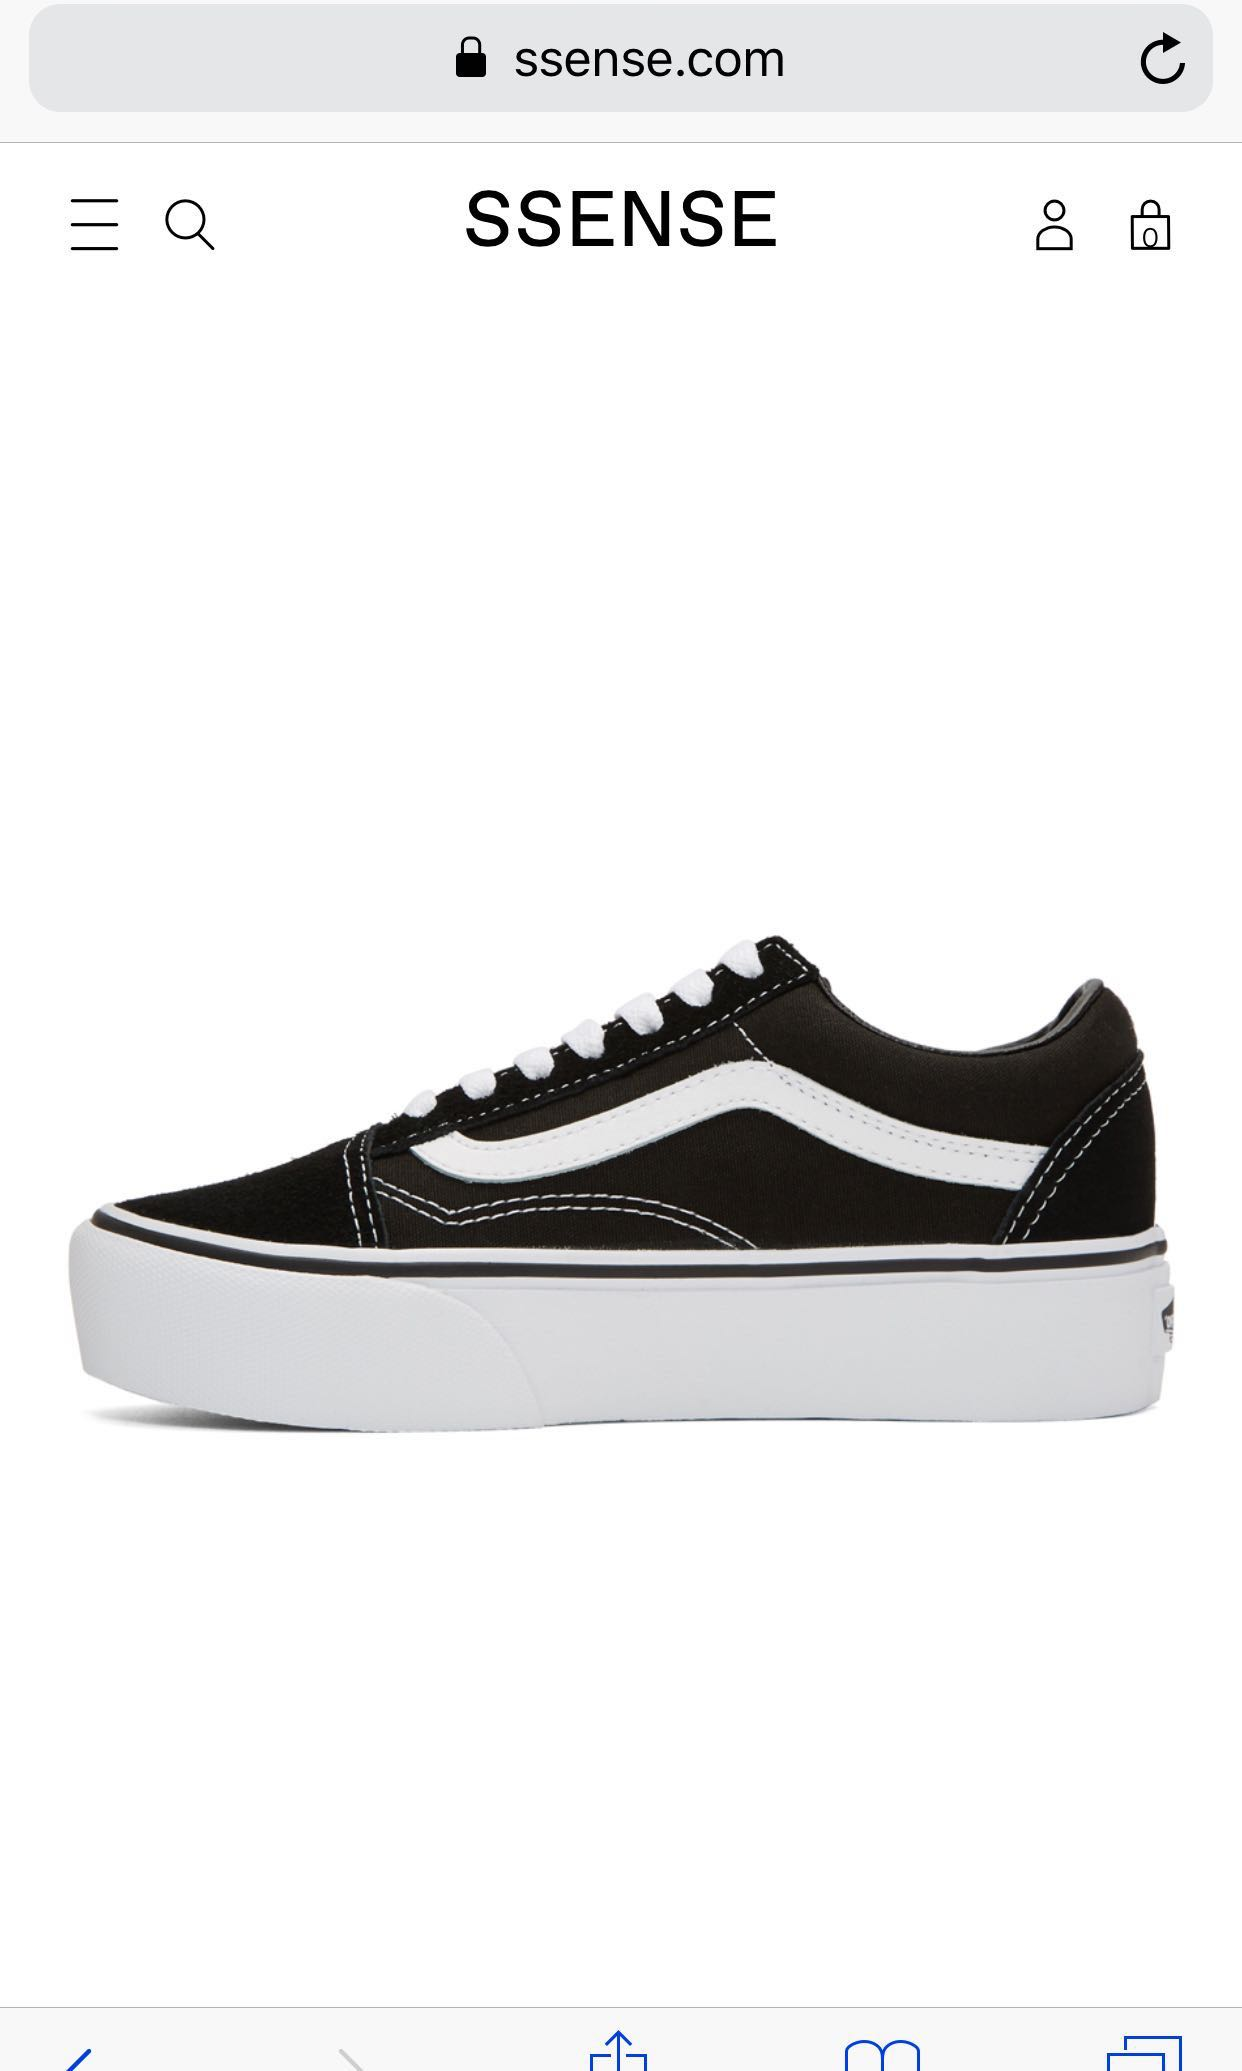 f80e89df179cf VANS Old Skool Platform, Women's Fashion, Shoes, Sneakers on Carousell